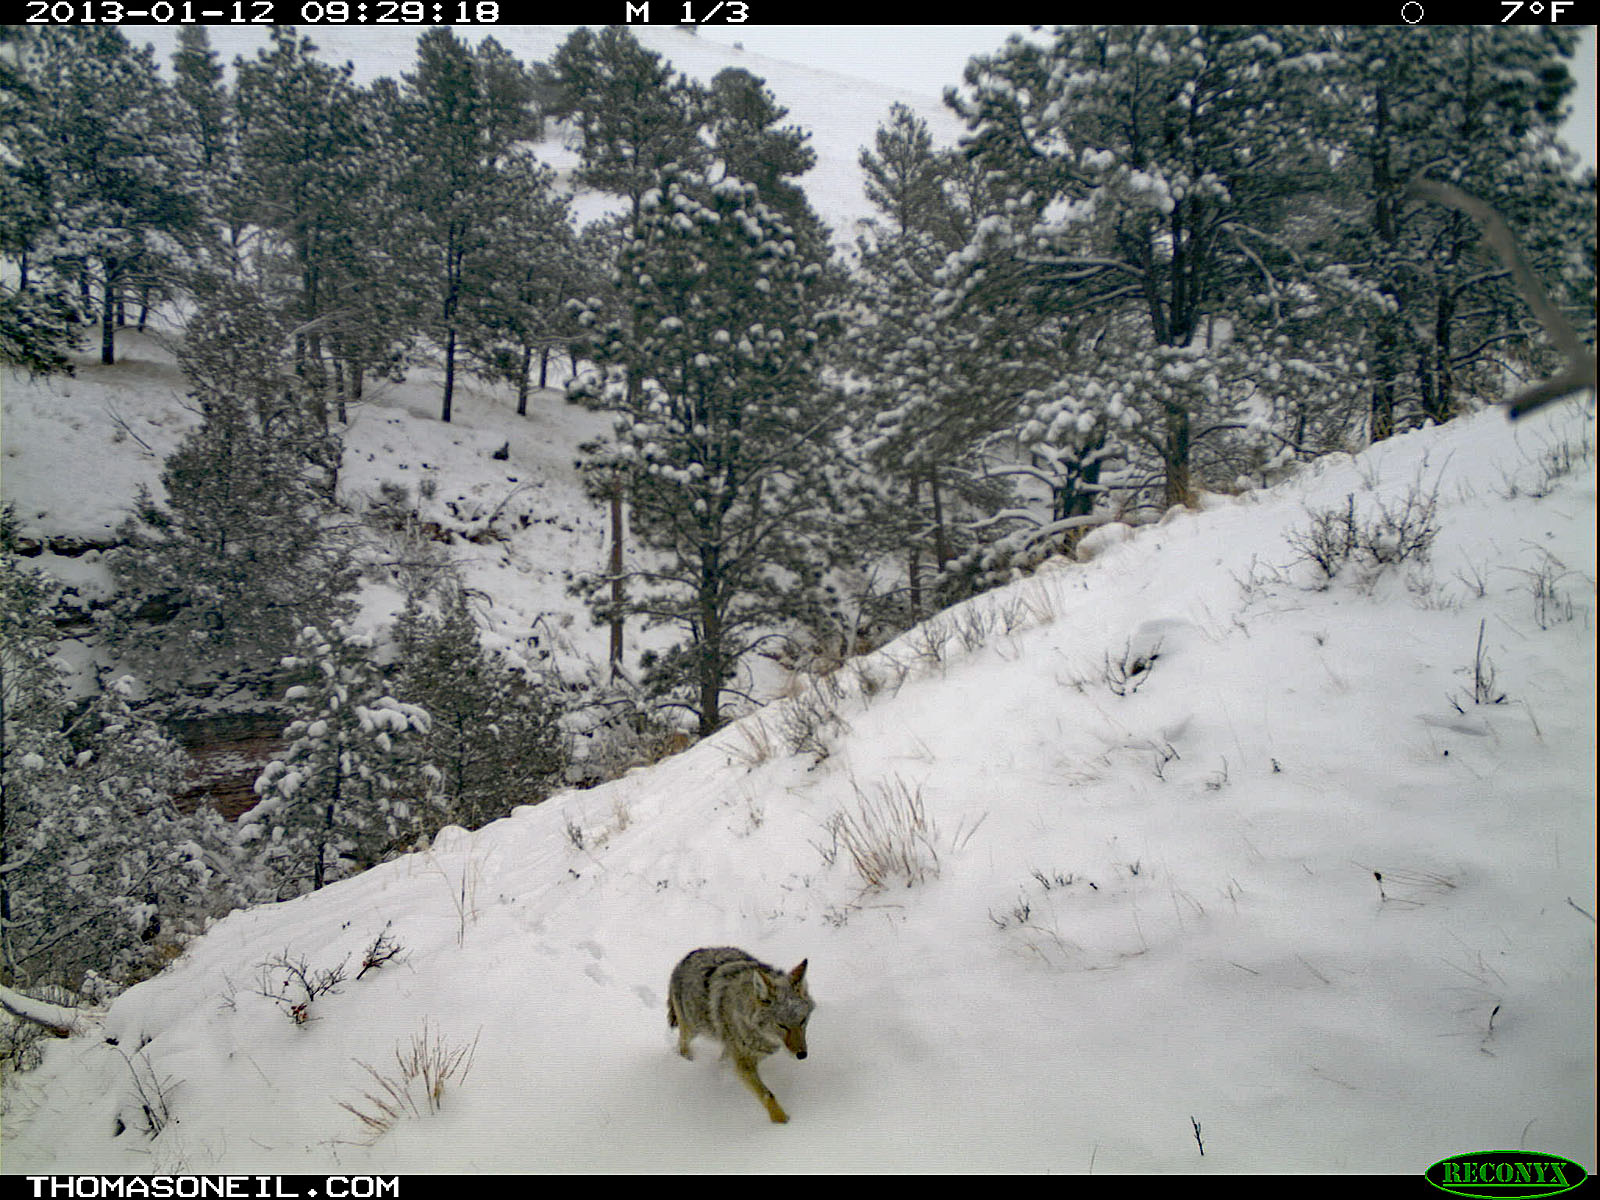 Coyote trudges through the snow, trailcam photo from Jan. 12, 2013, Wind Cave National Park, South Dakota.